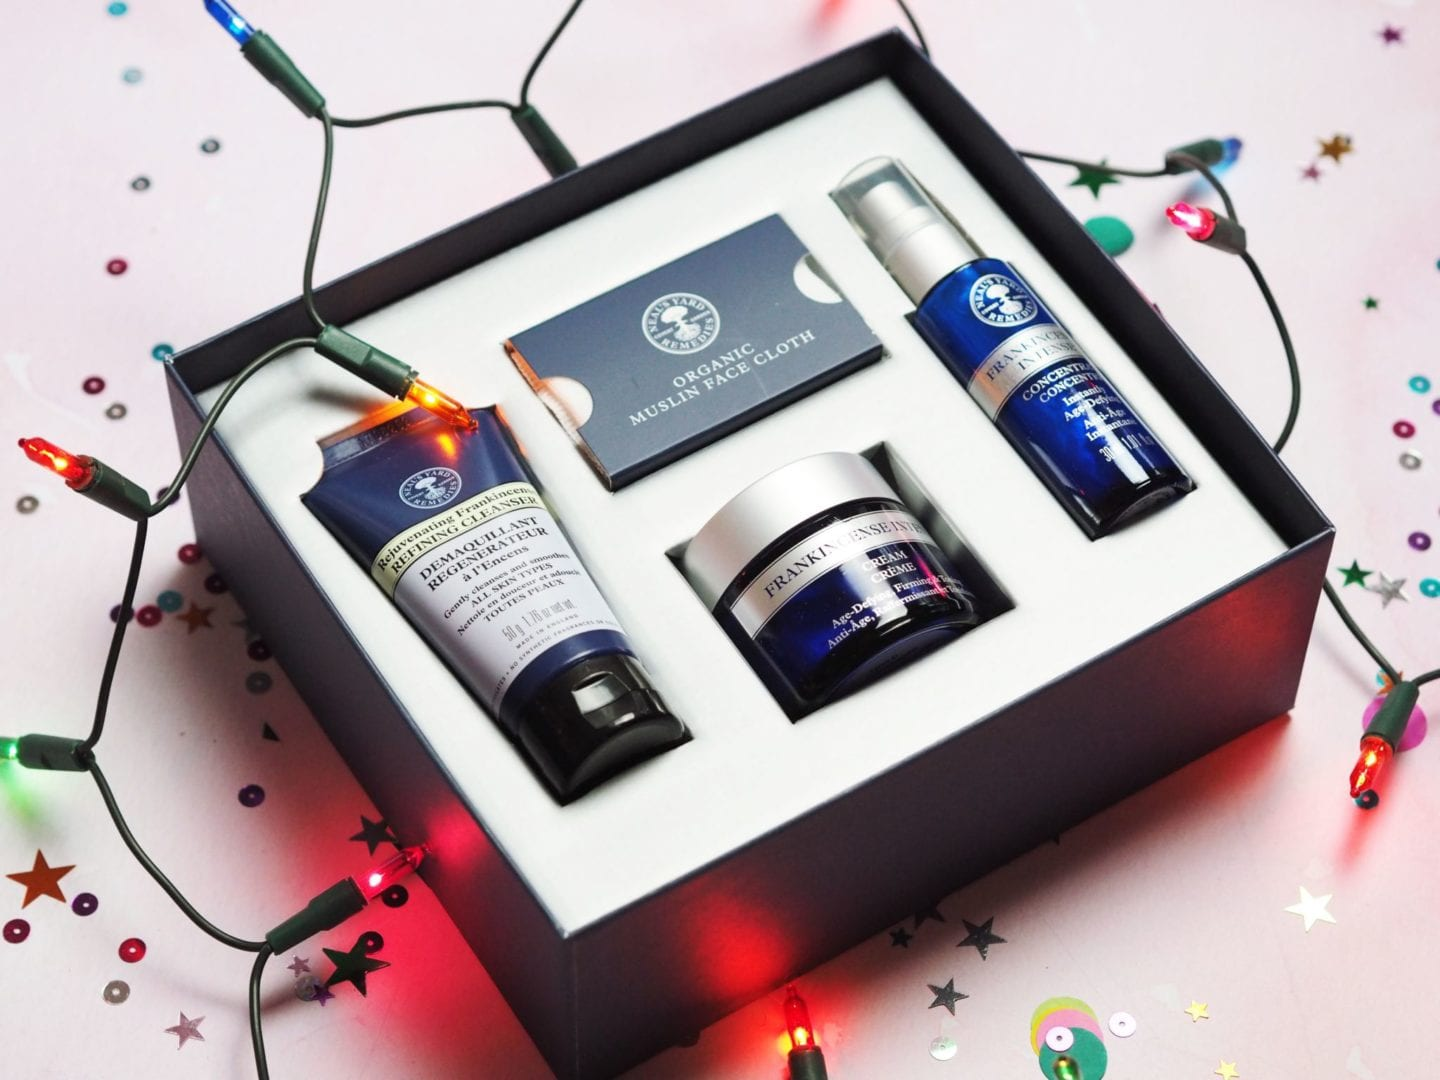 Neal's Yard Remedies 'Frankincense Intense' Collection